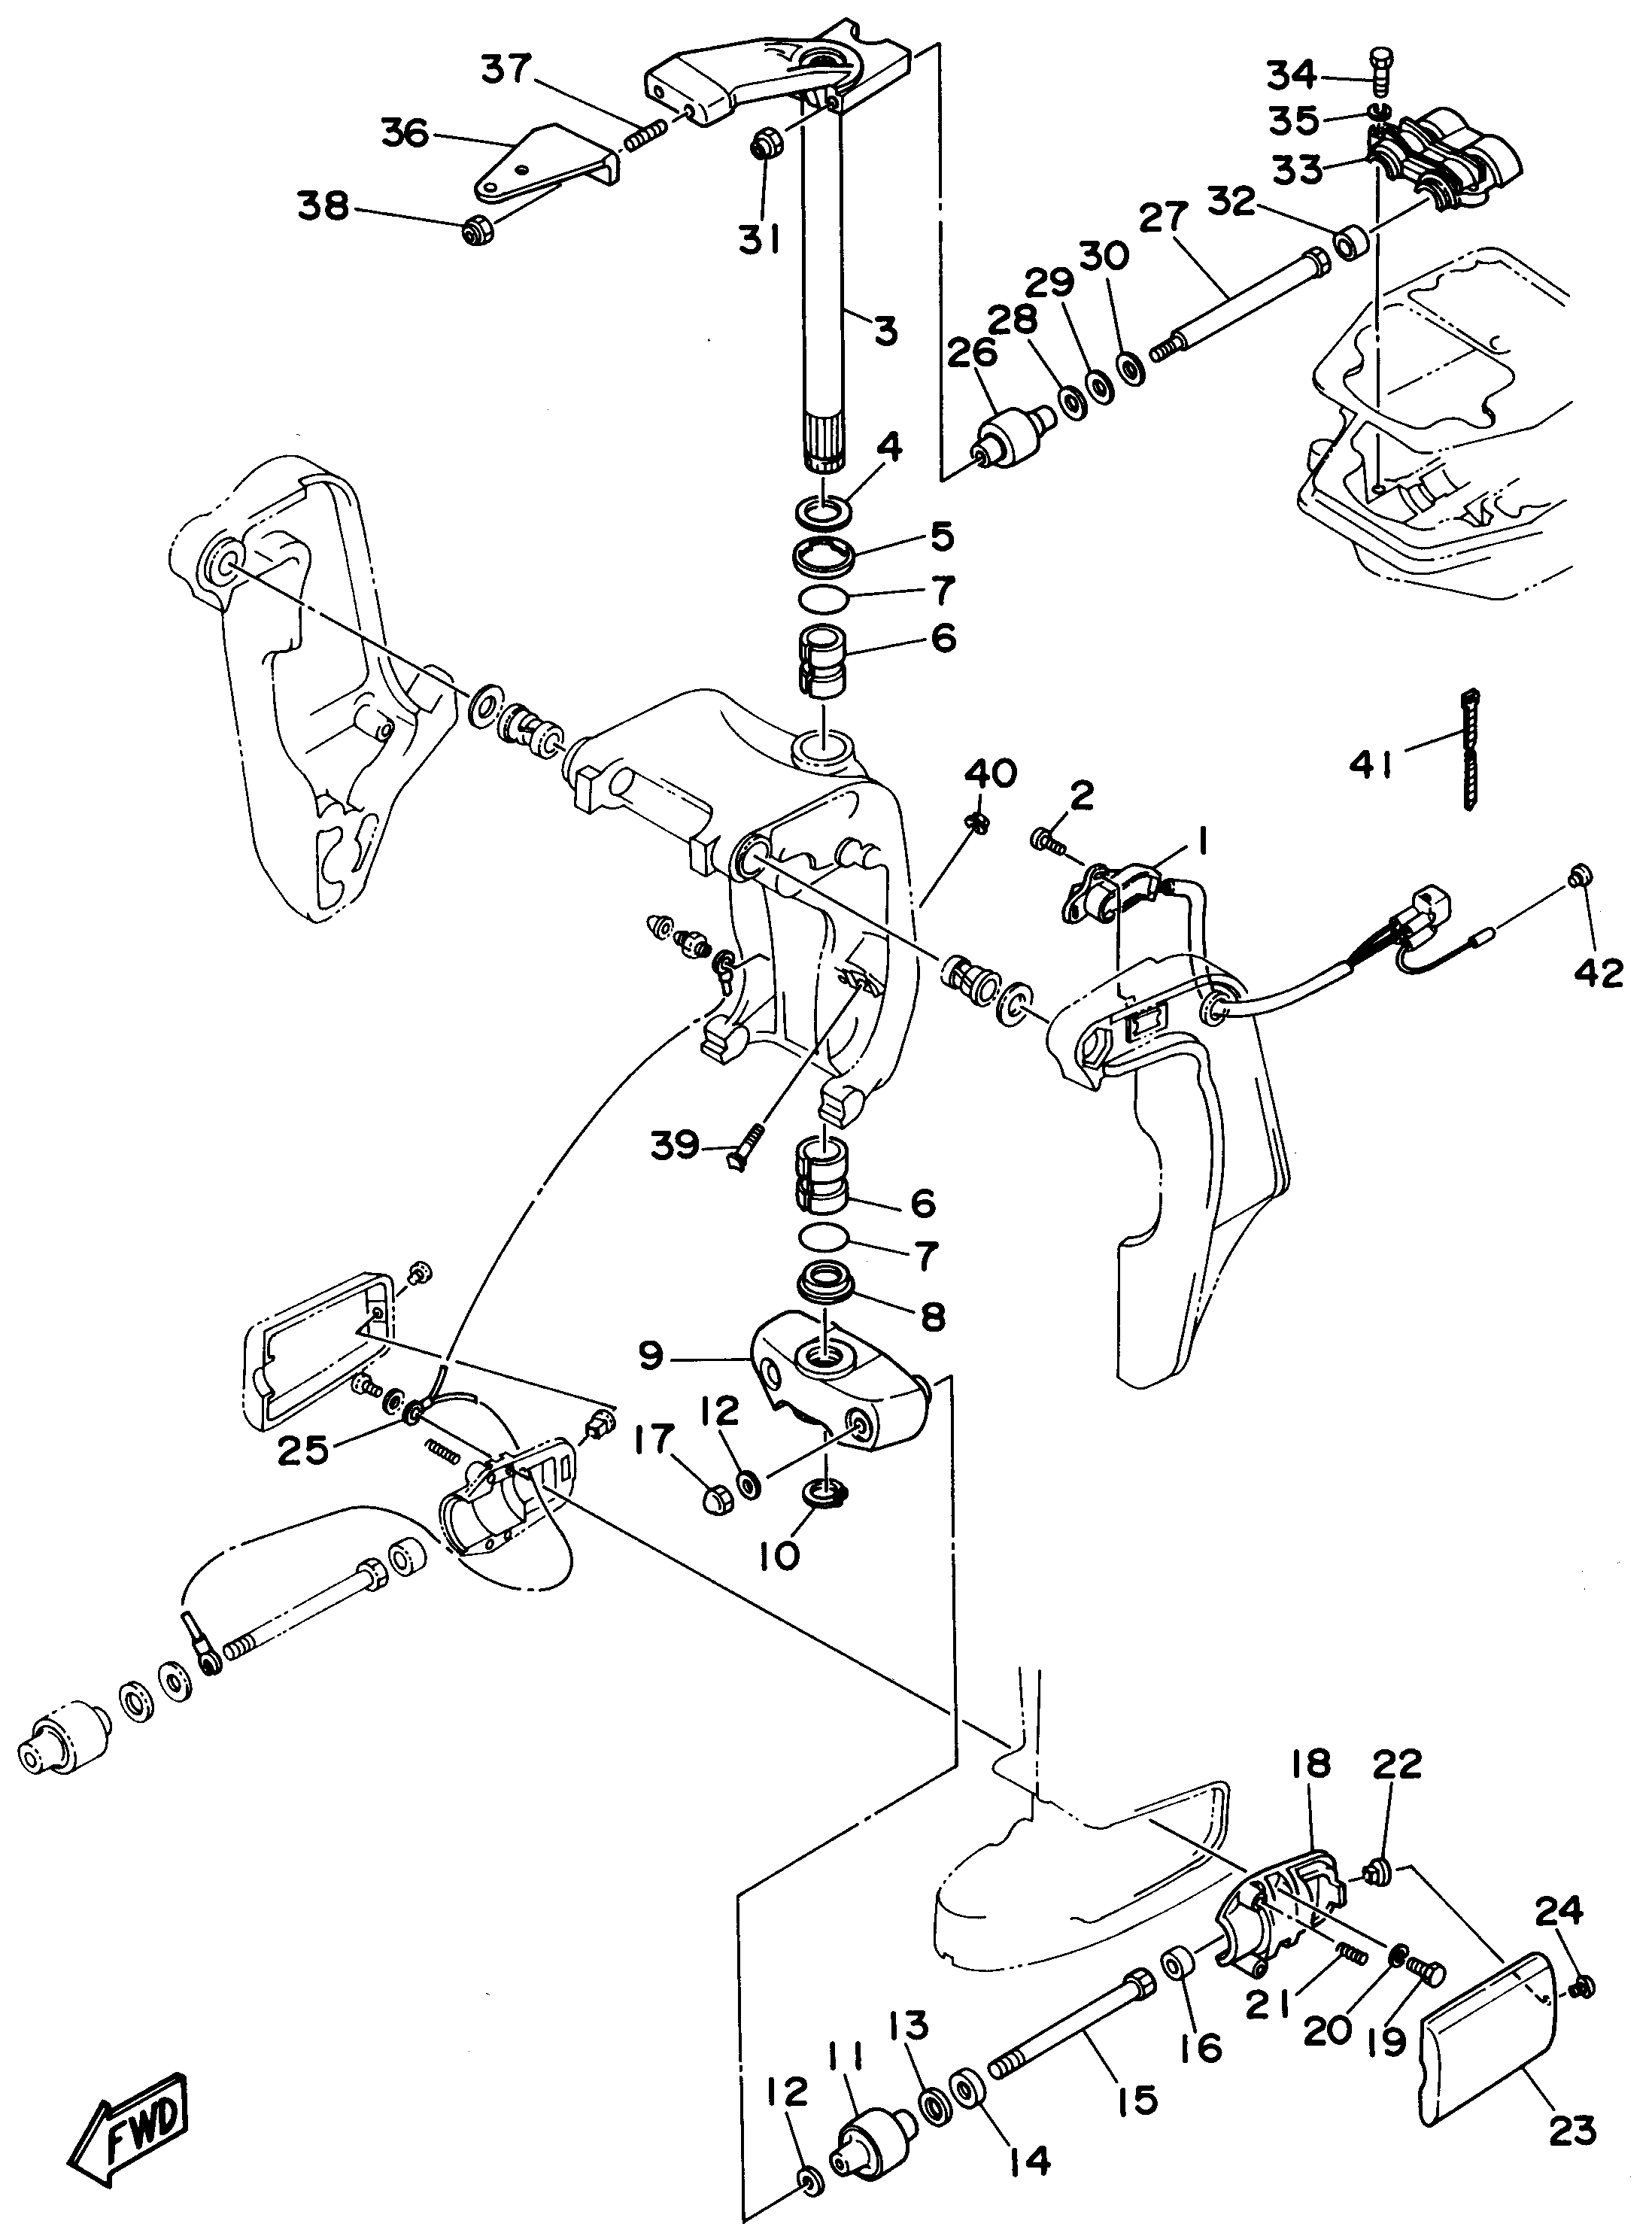 johnson controls wiring diagram